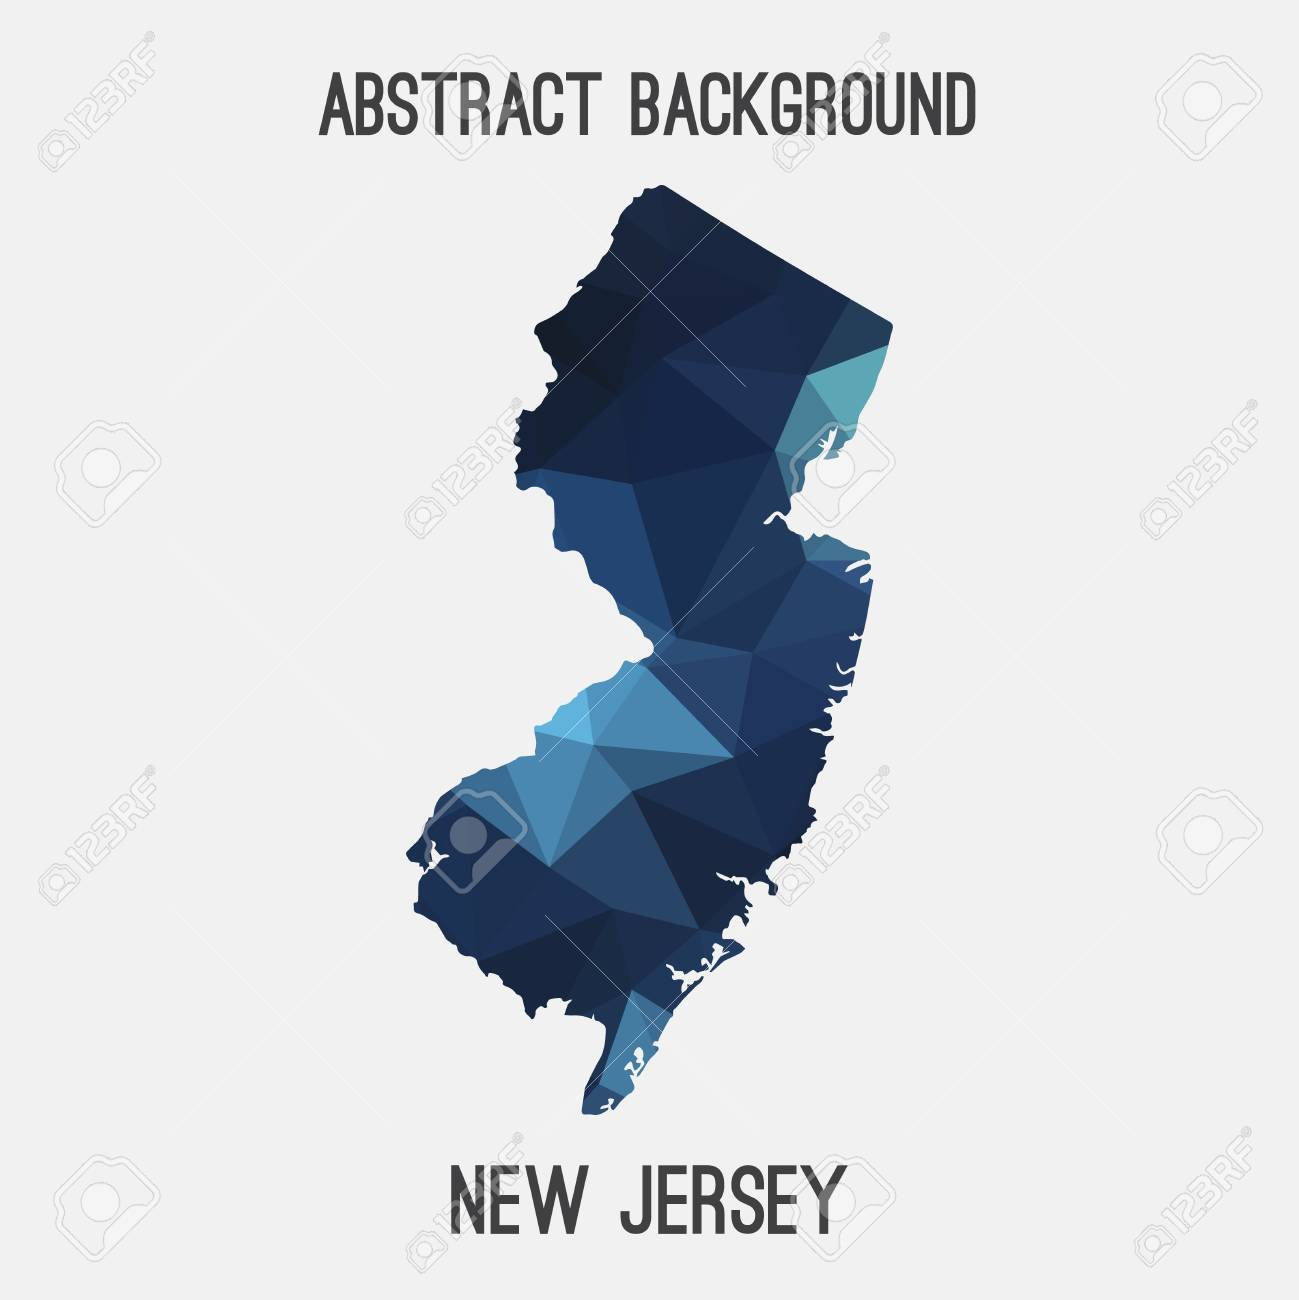 New Jersey State Map In Geometric Polygonal Style Abstract